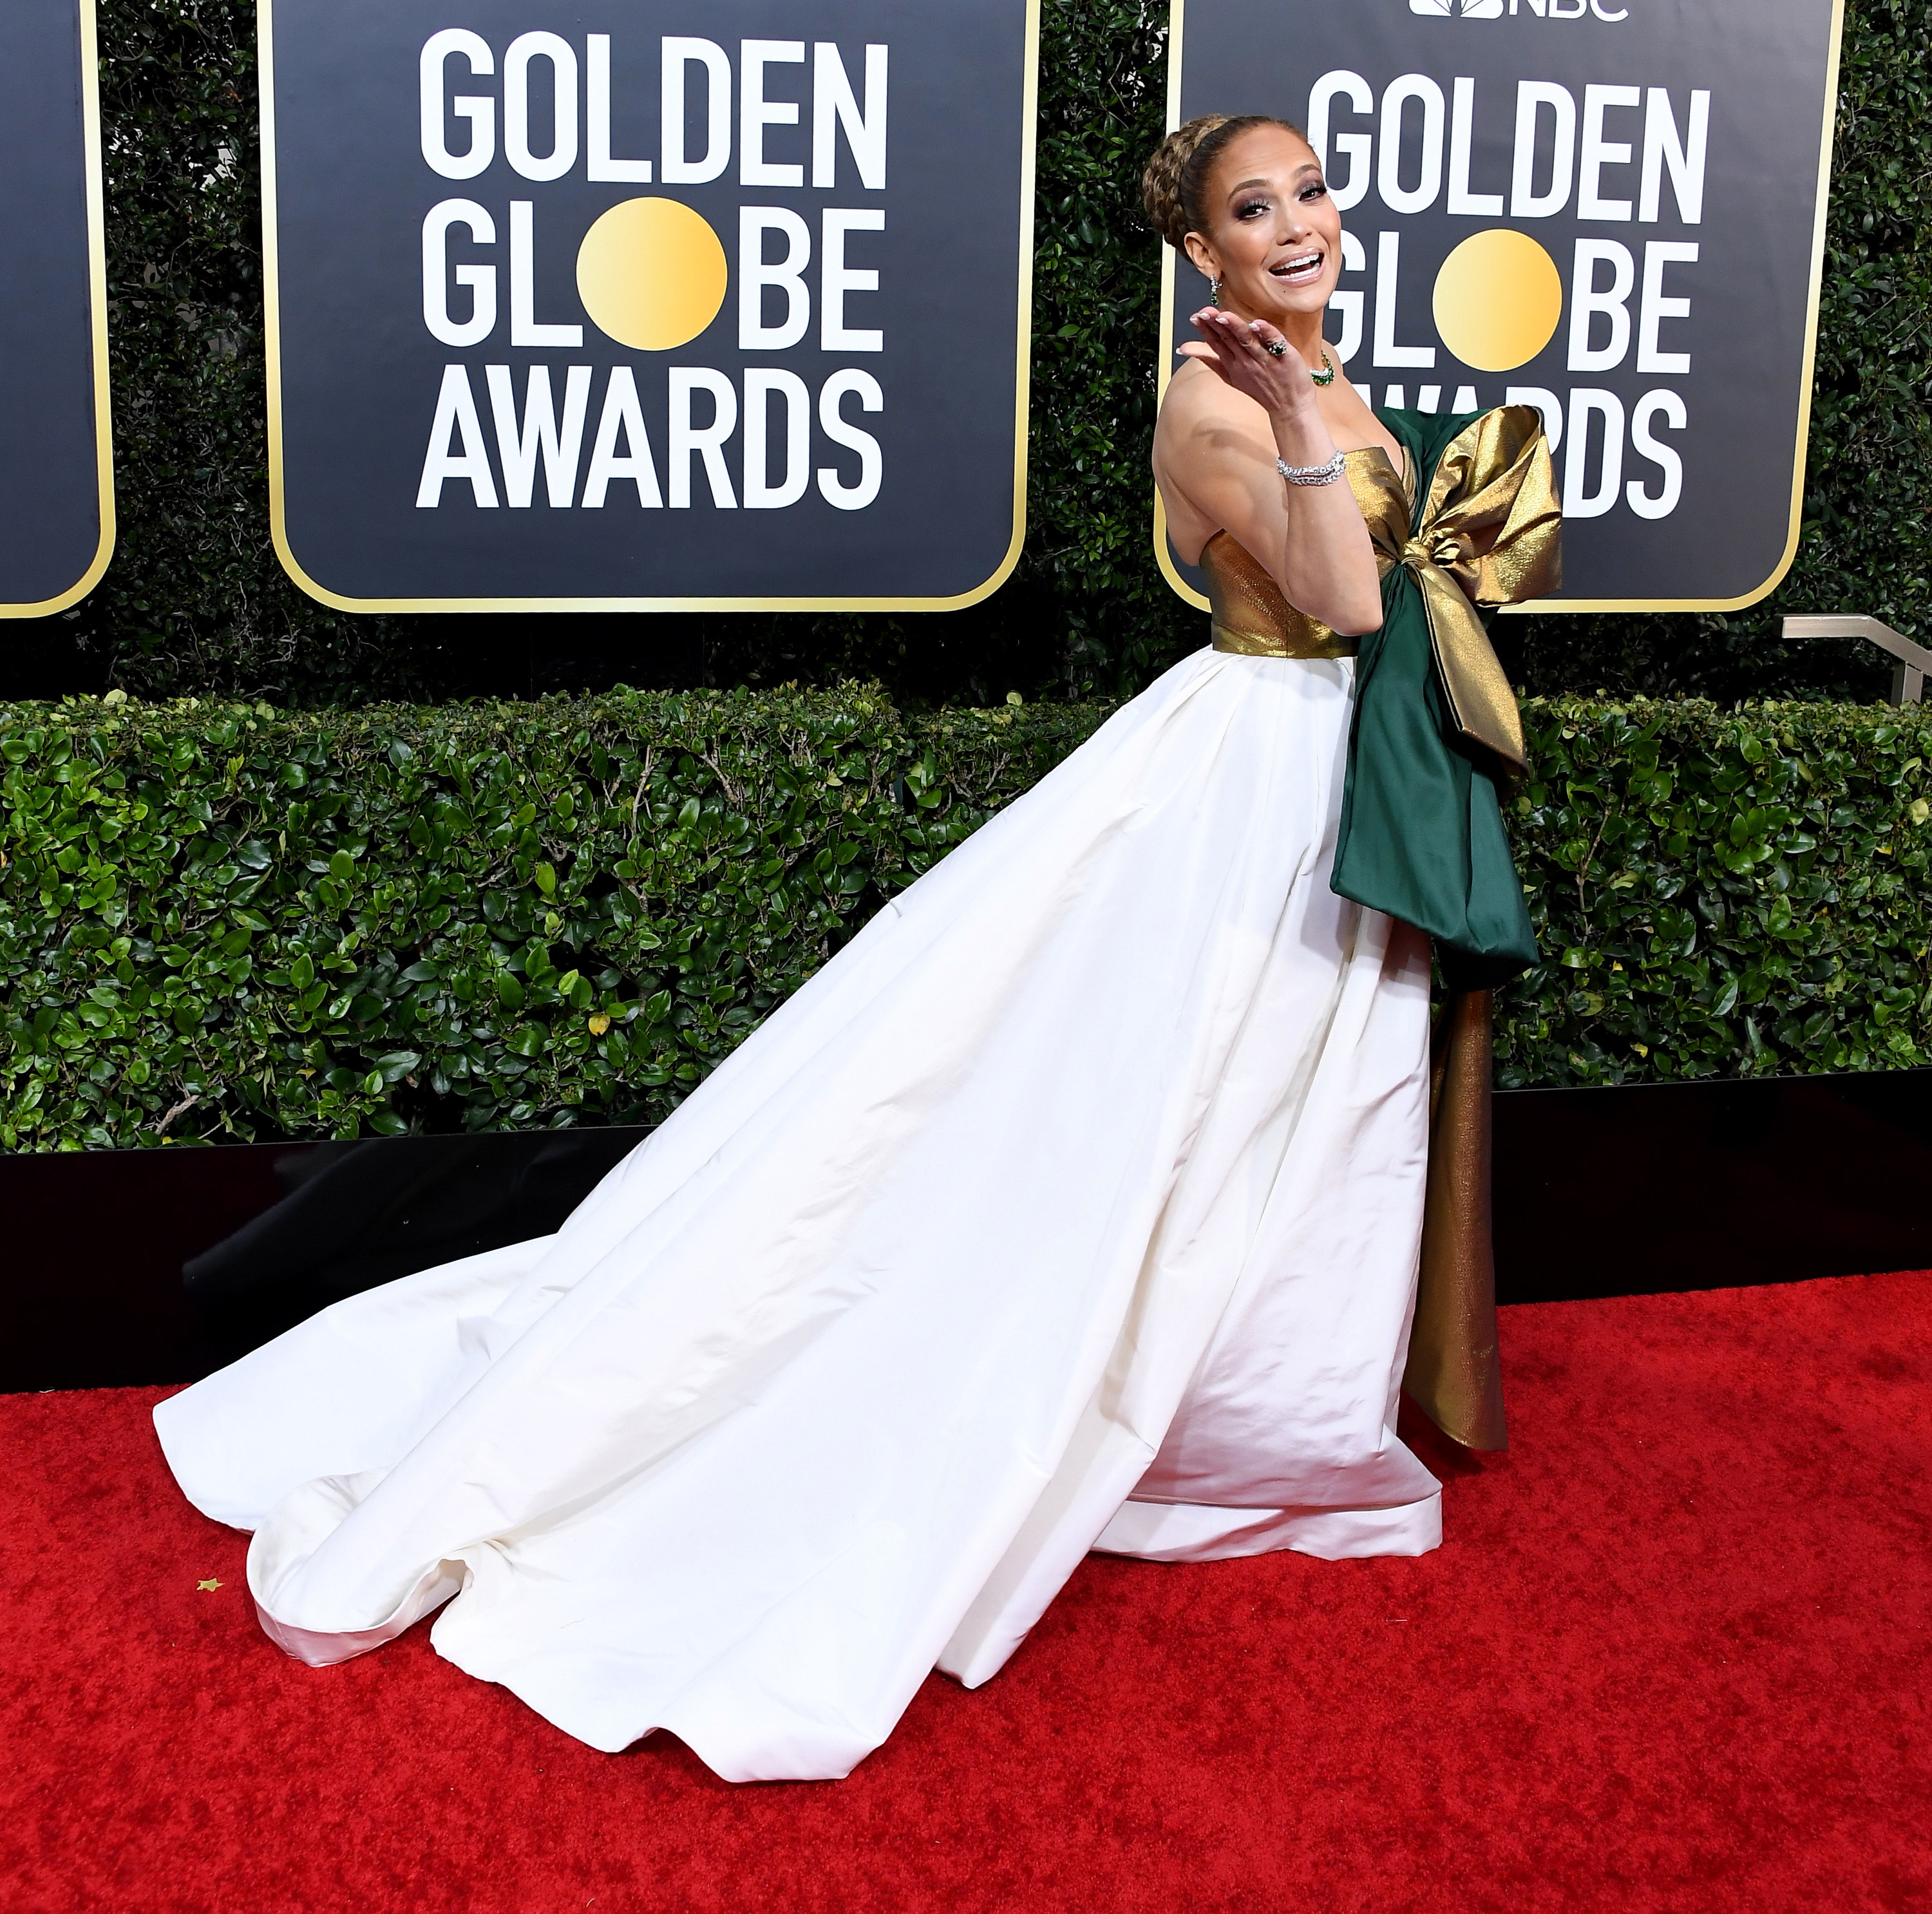 Jennifer Lopez arrives at the 77th Annual Golden Globe Awards attends the 77th Annual Golden Globe Awards at The Beverly Hilton Hotel on January 05, 2020 in Beverly Hills, California.